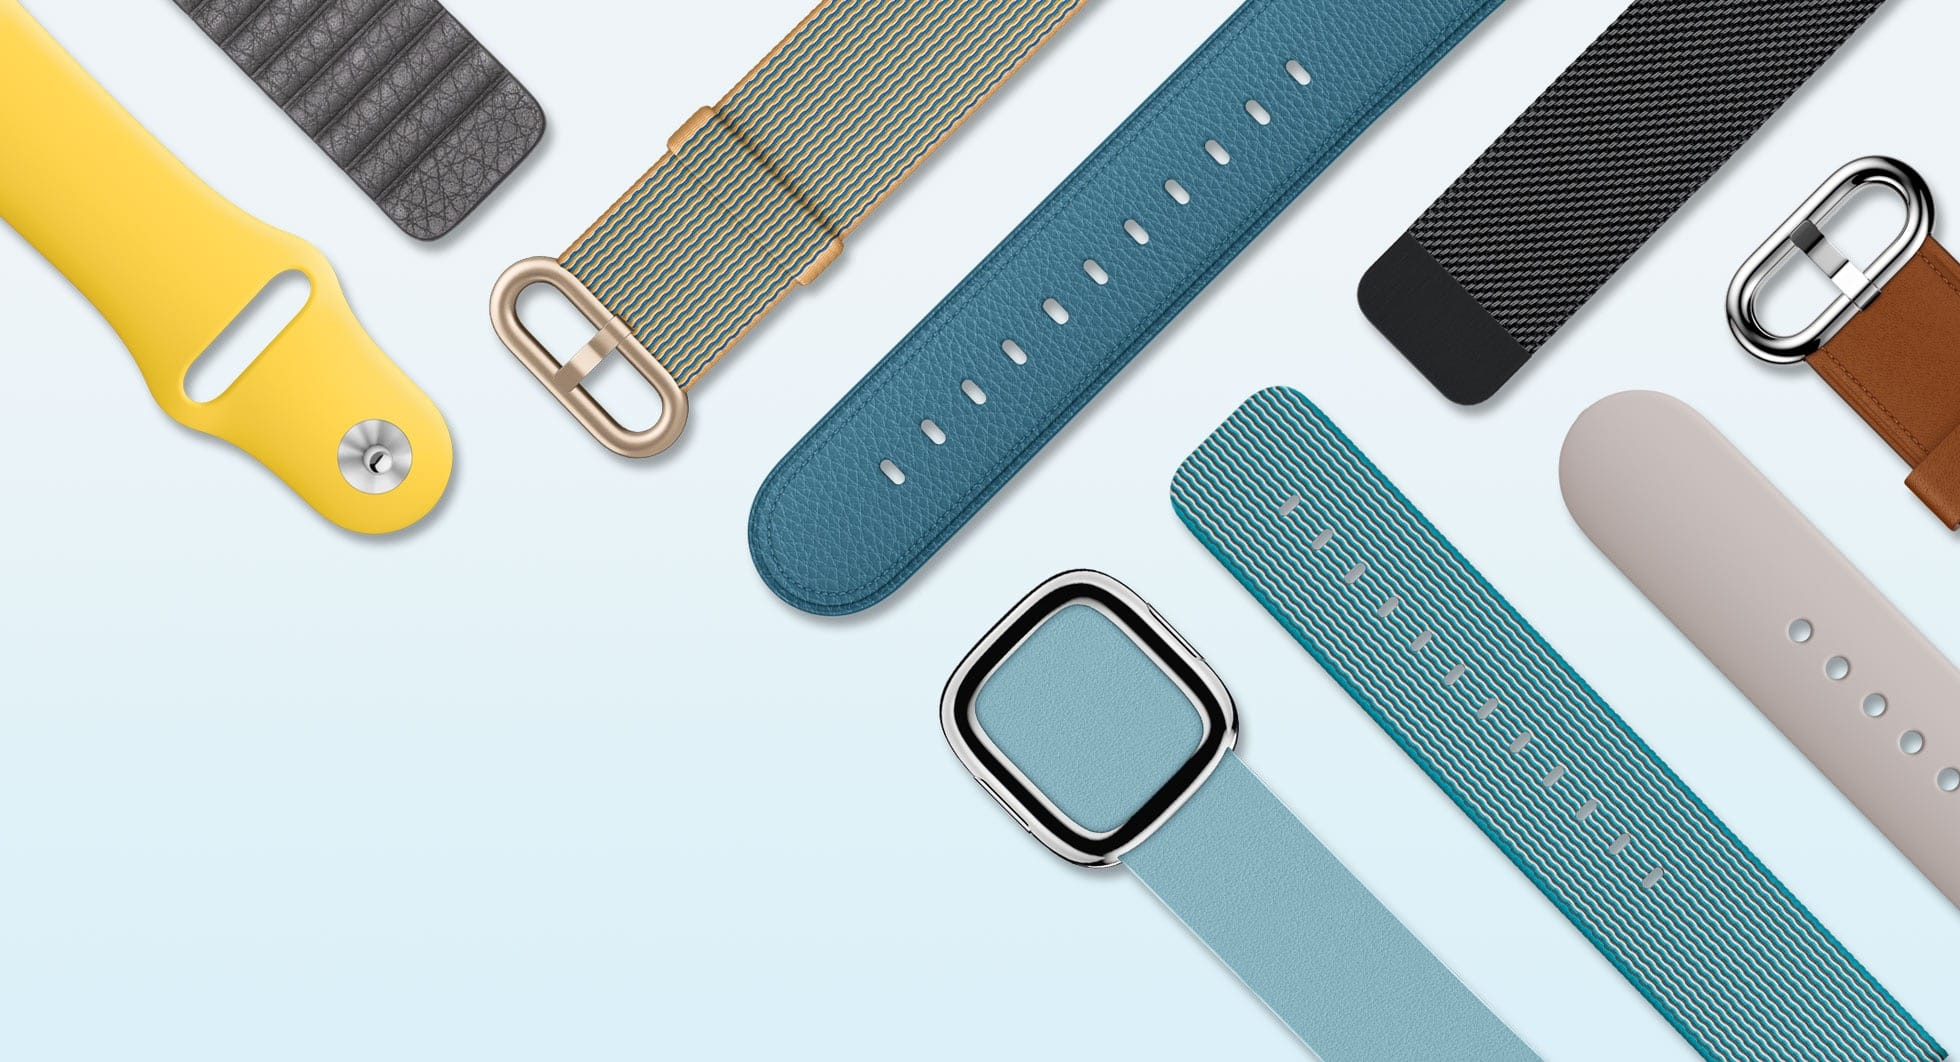 Apple Watch March 2016 bands hero